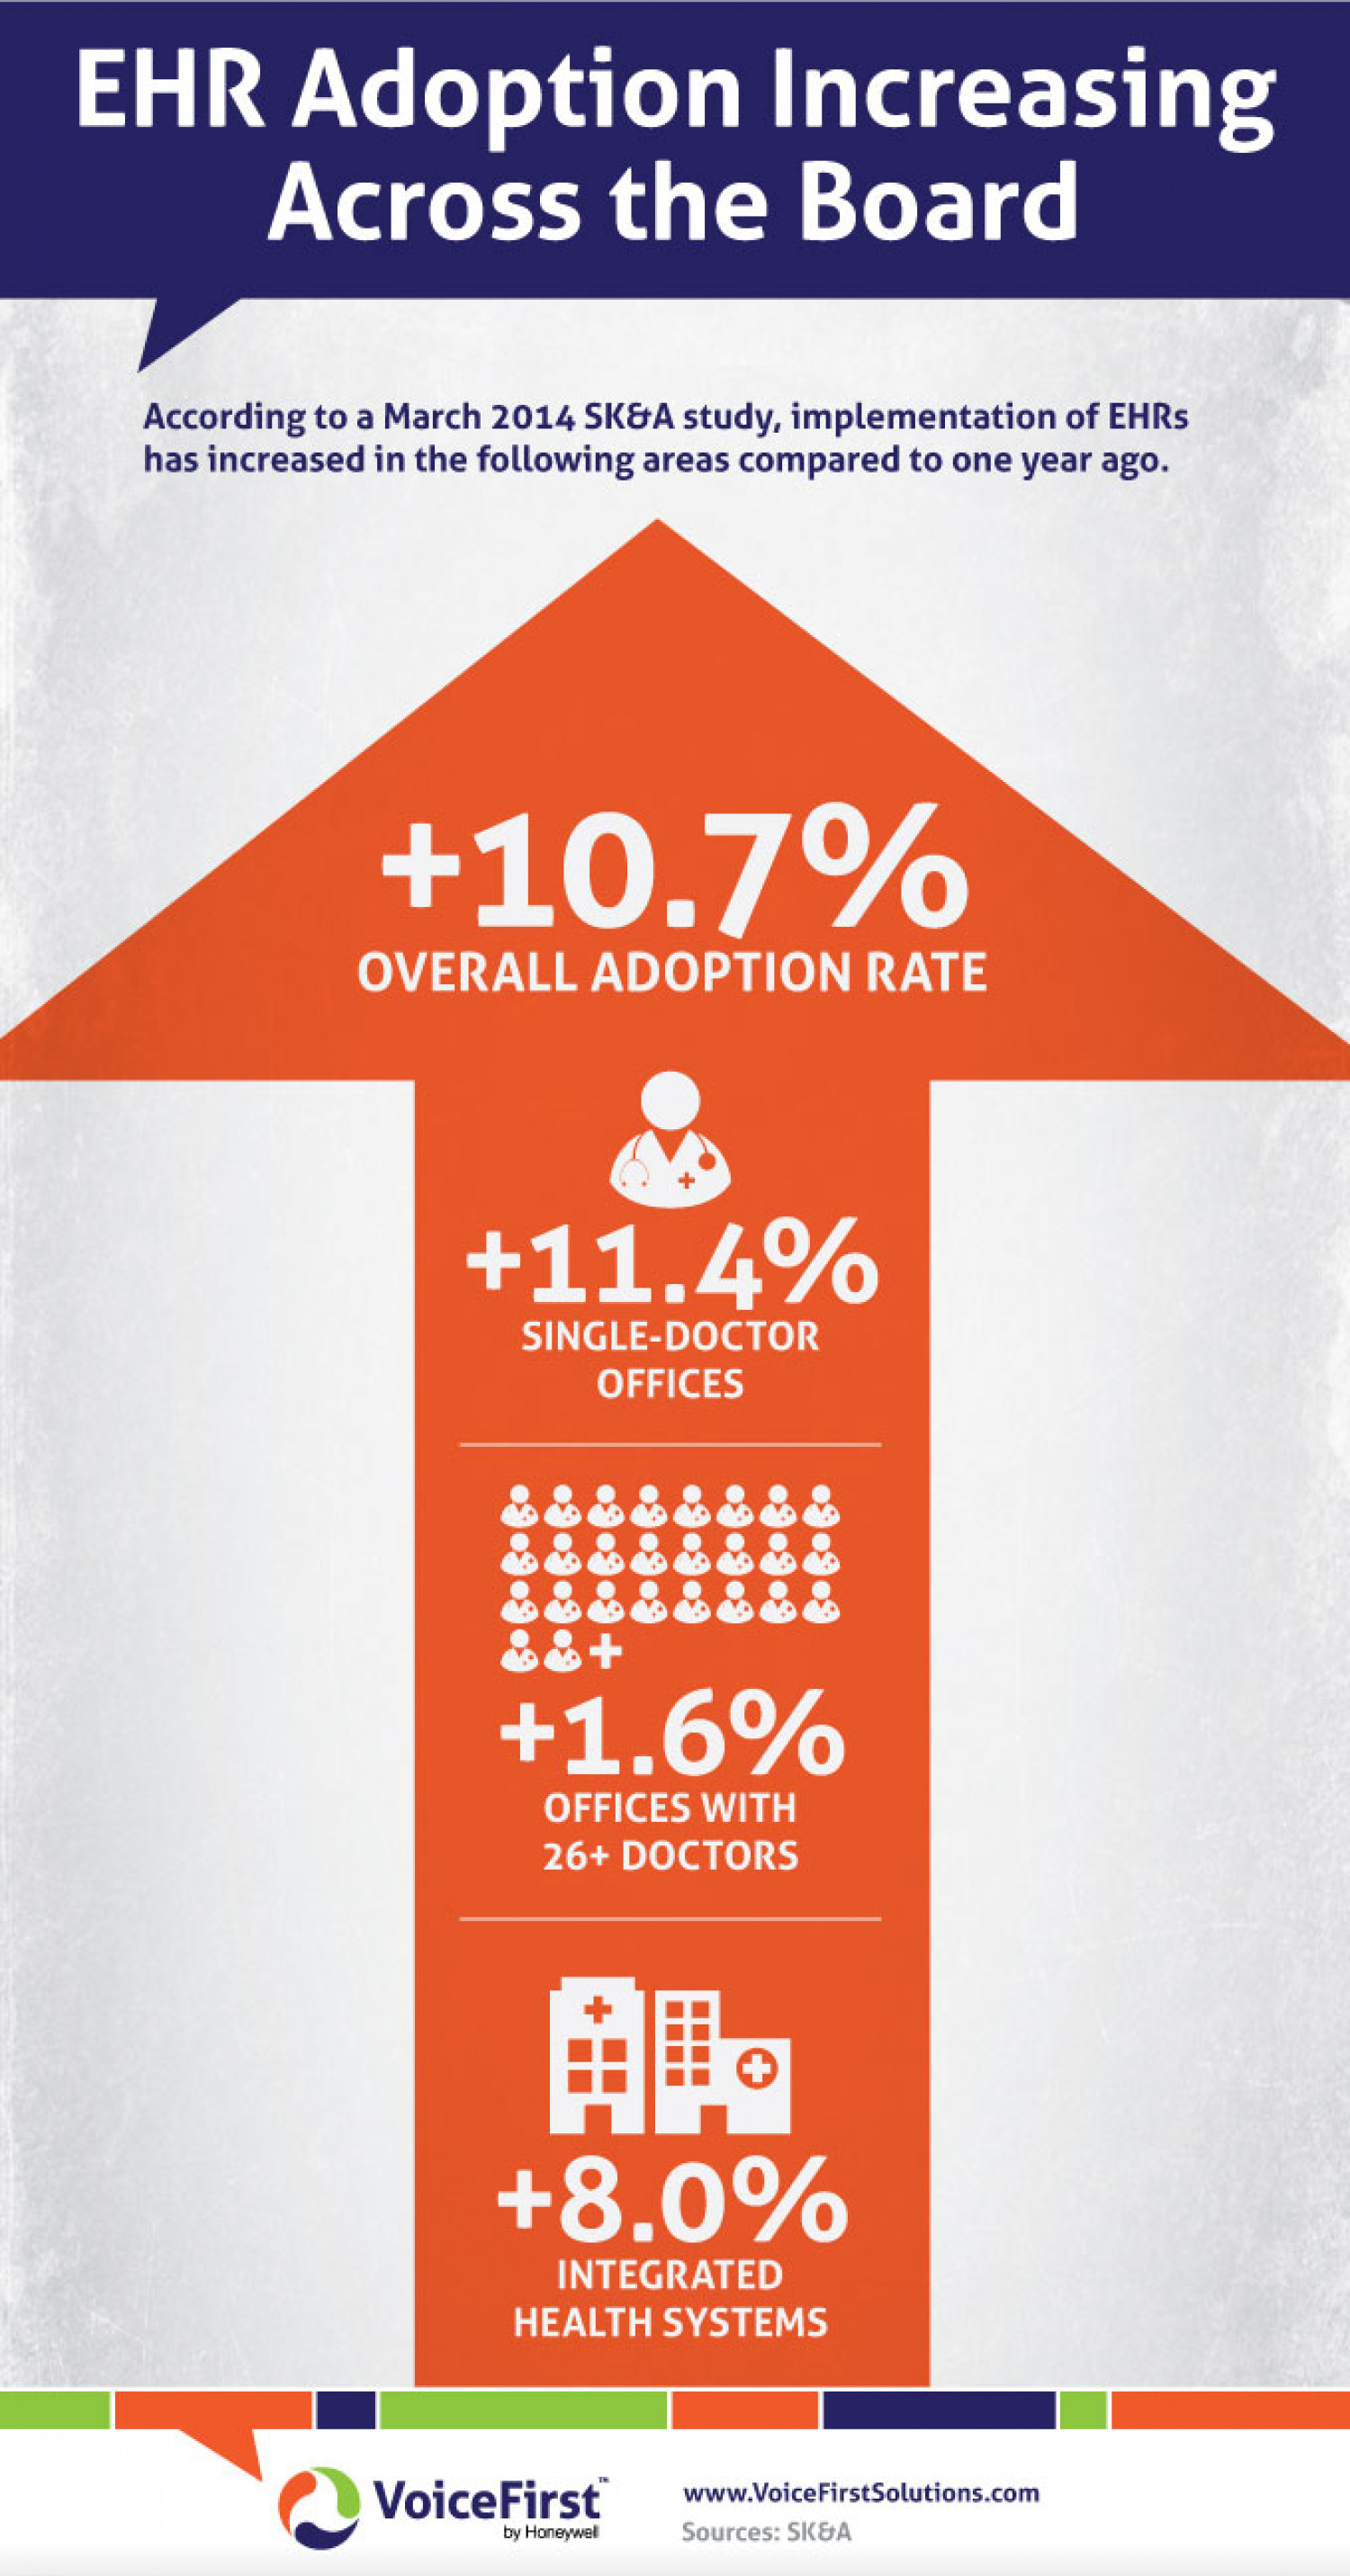 EHR Adoption Increasing Across the Board Infographic